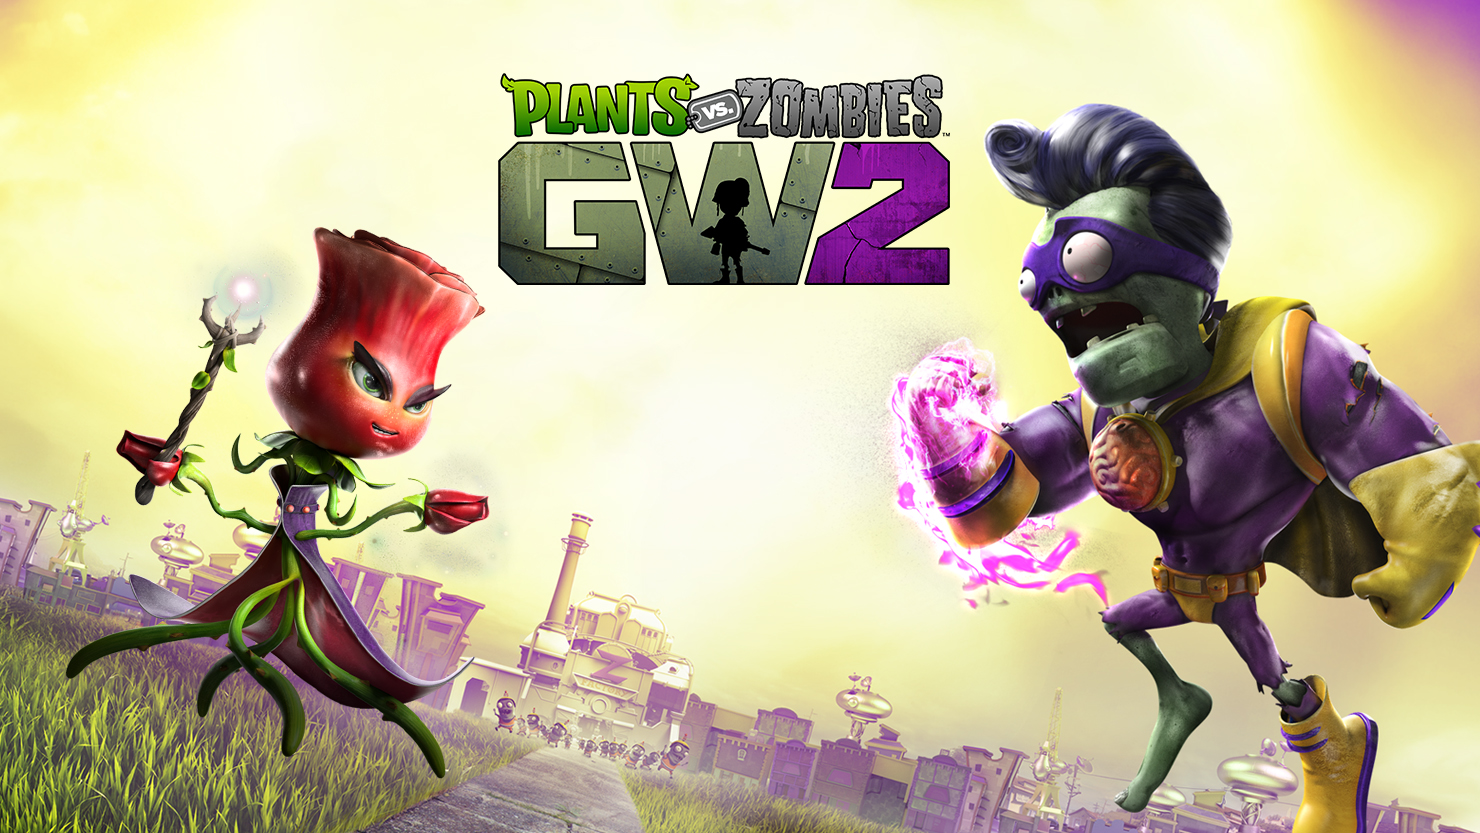 plants gb ea and img garden en origin news zombies warfare occurred an vs error uk access